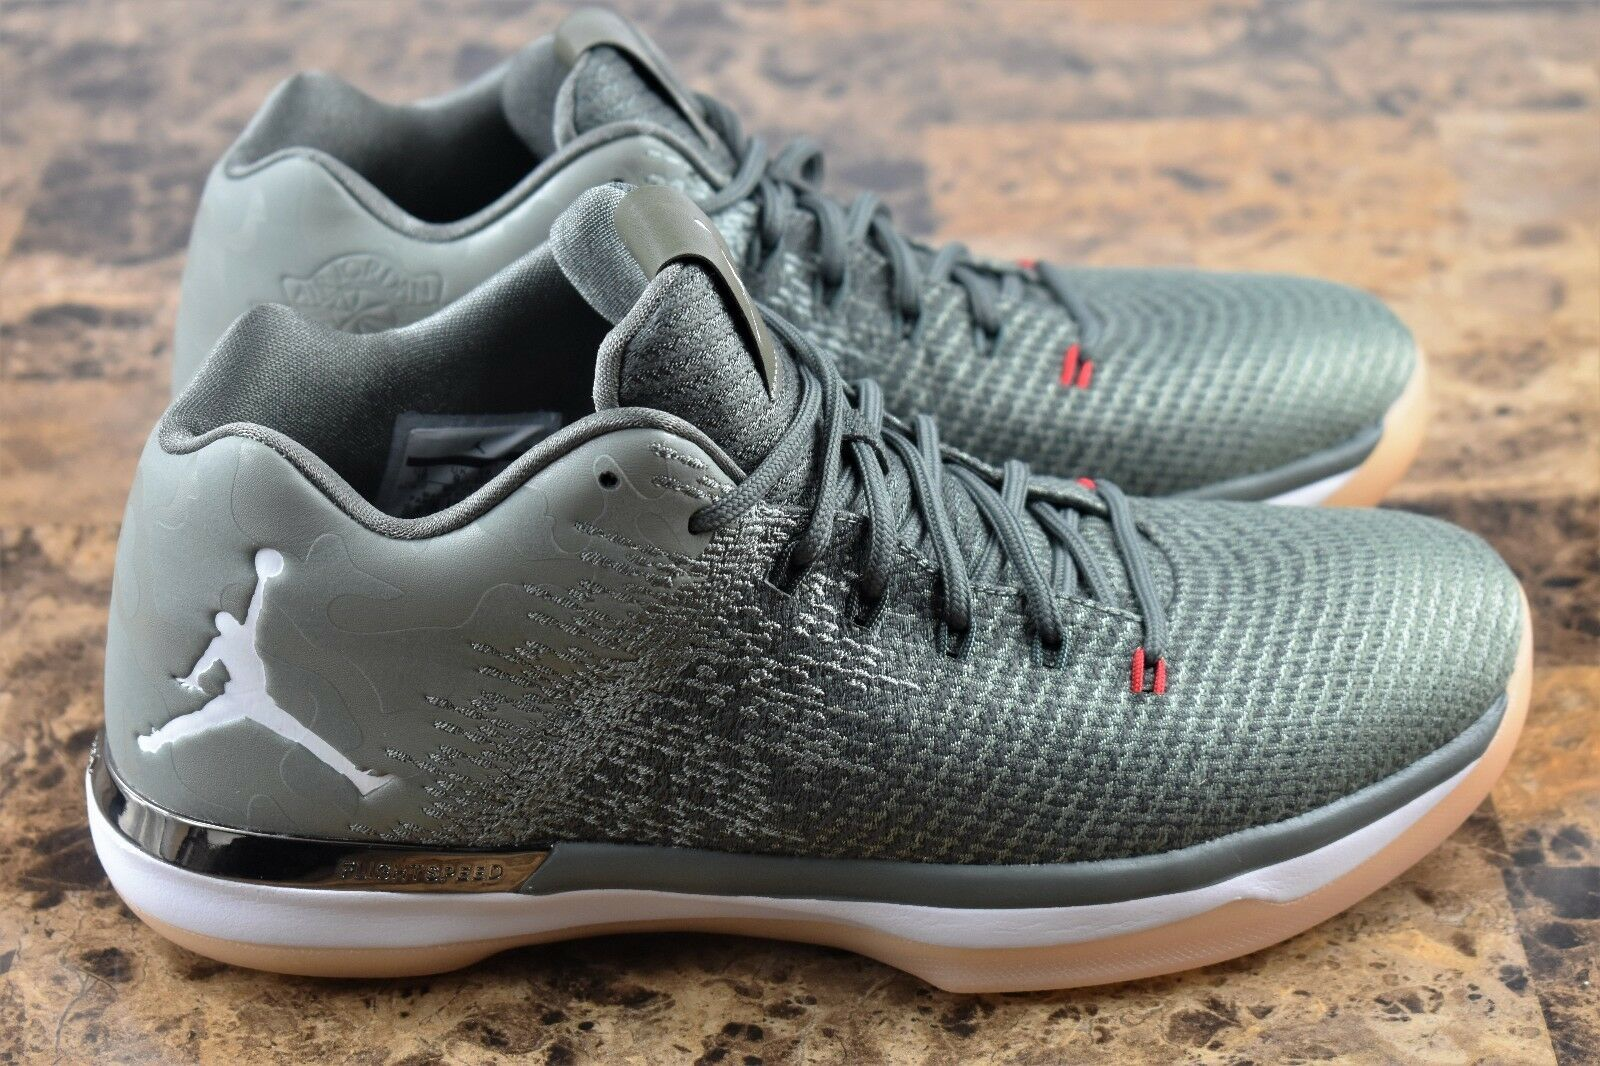 Nike Air Jordan XXXI 31 Low Mens Size 8.5 Shoes Take Flight Camo 897564 051